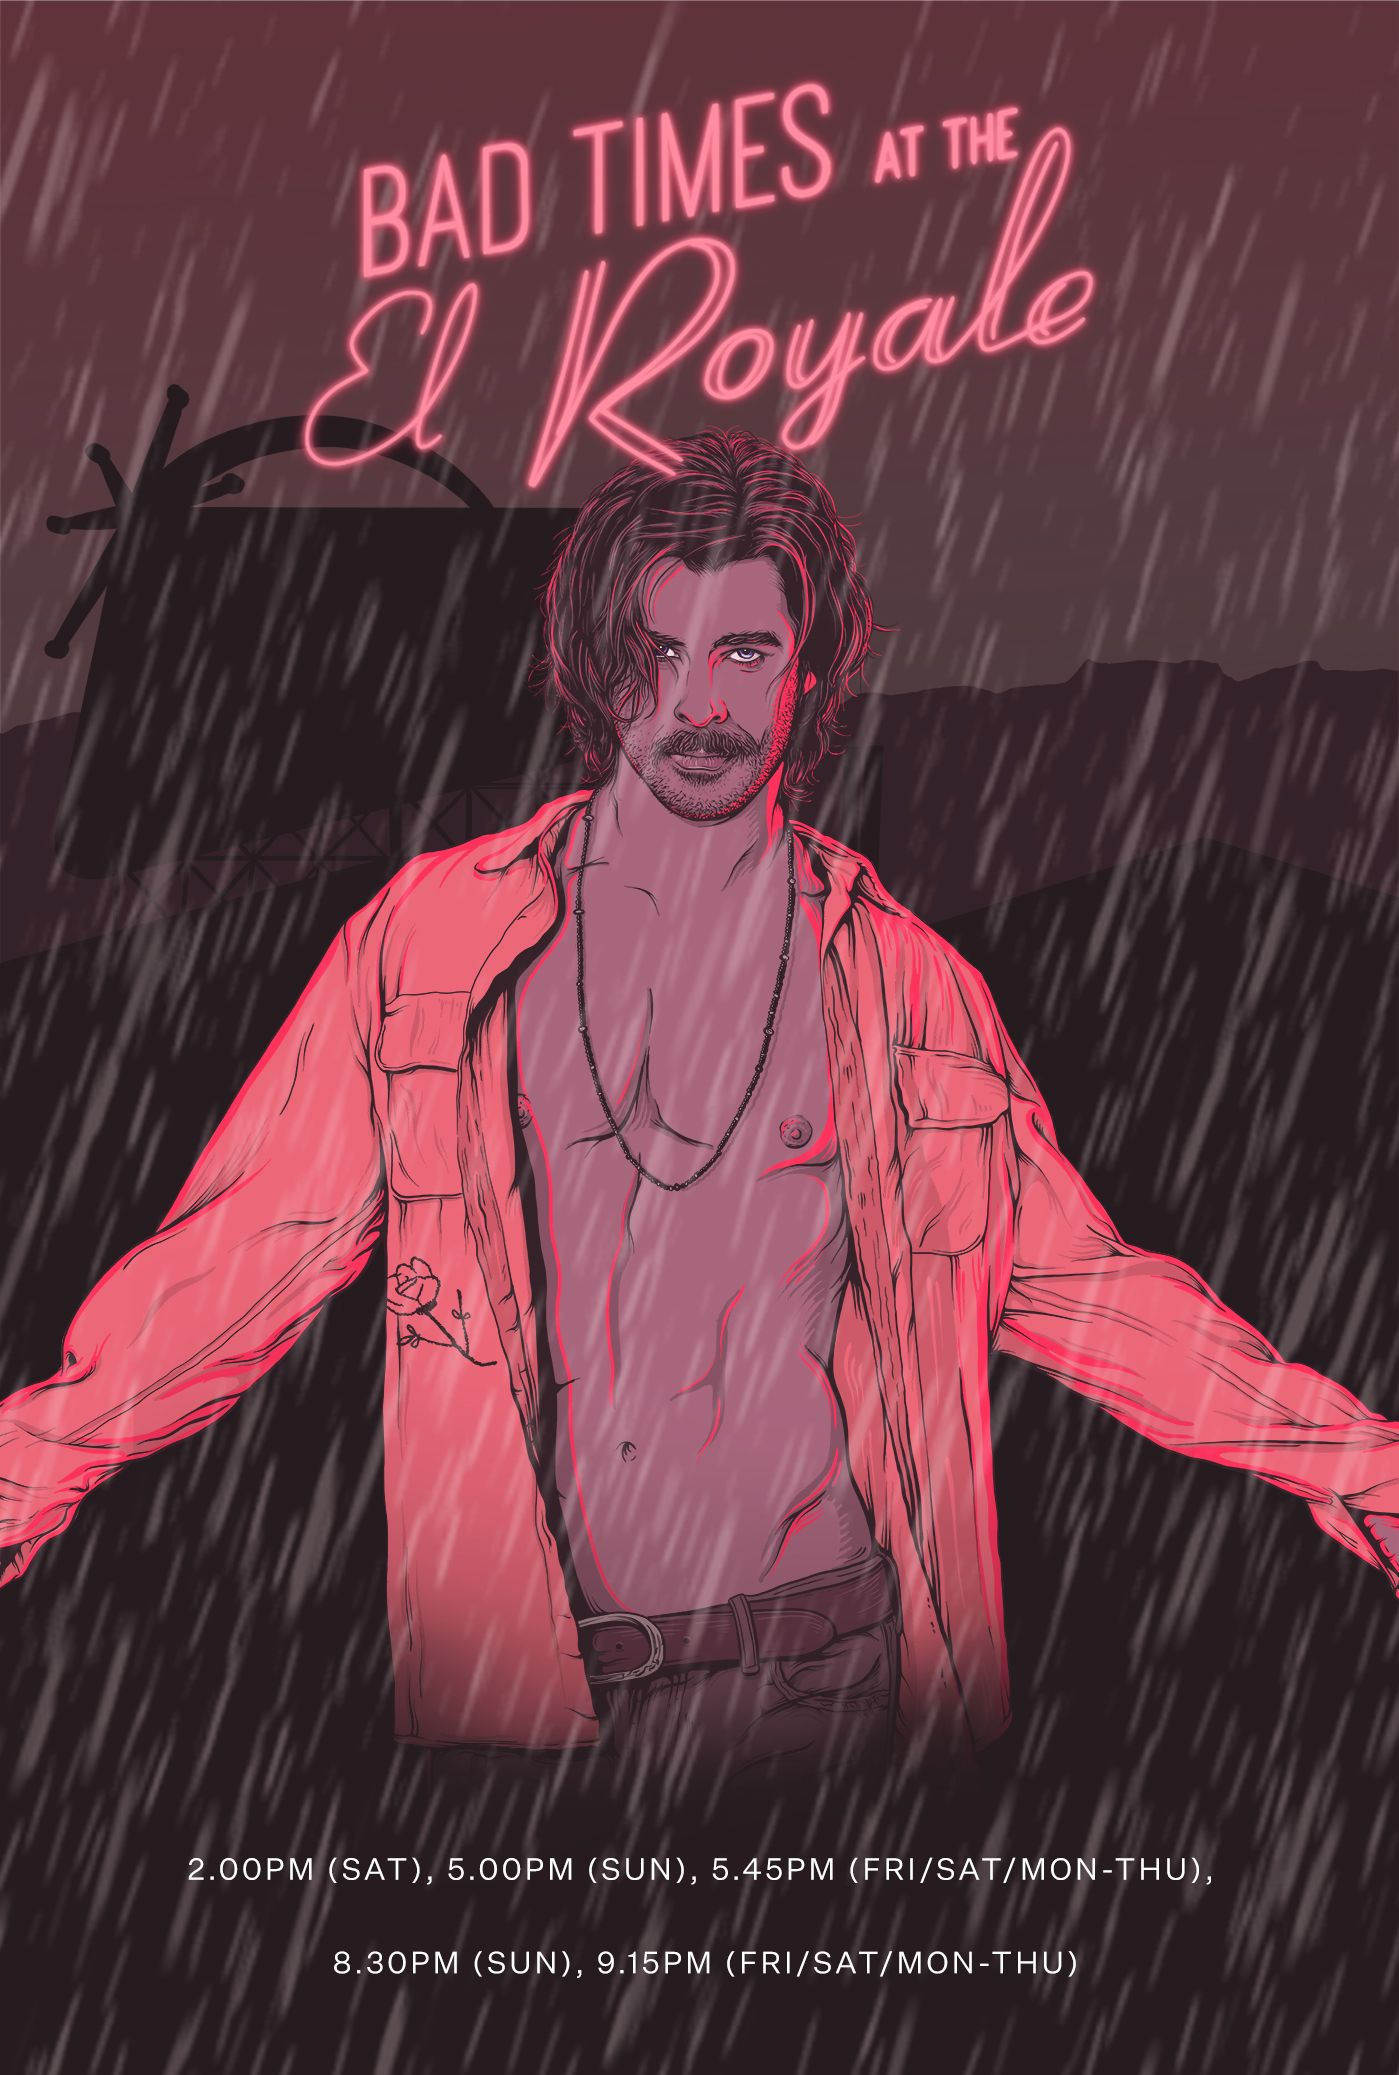 Bad Times At The El Royale In 2020 Bad Timing Alternative Movie